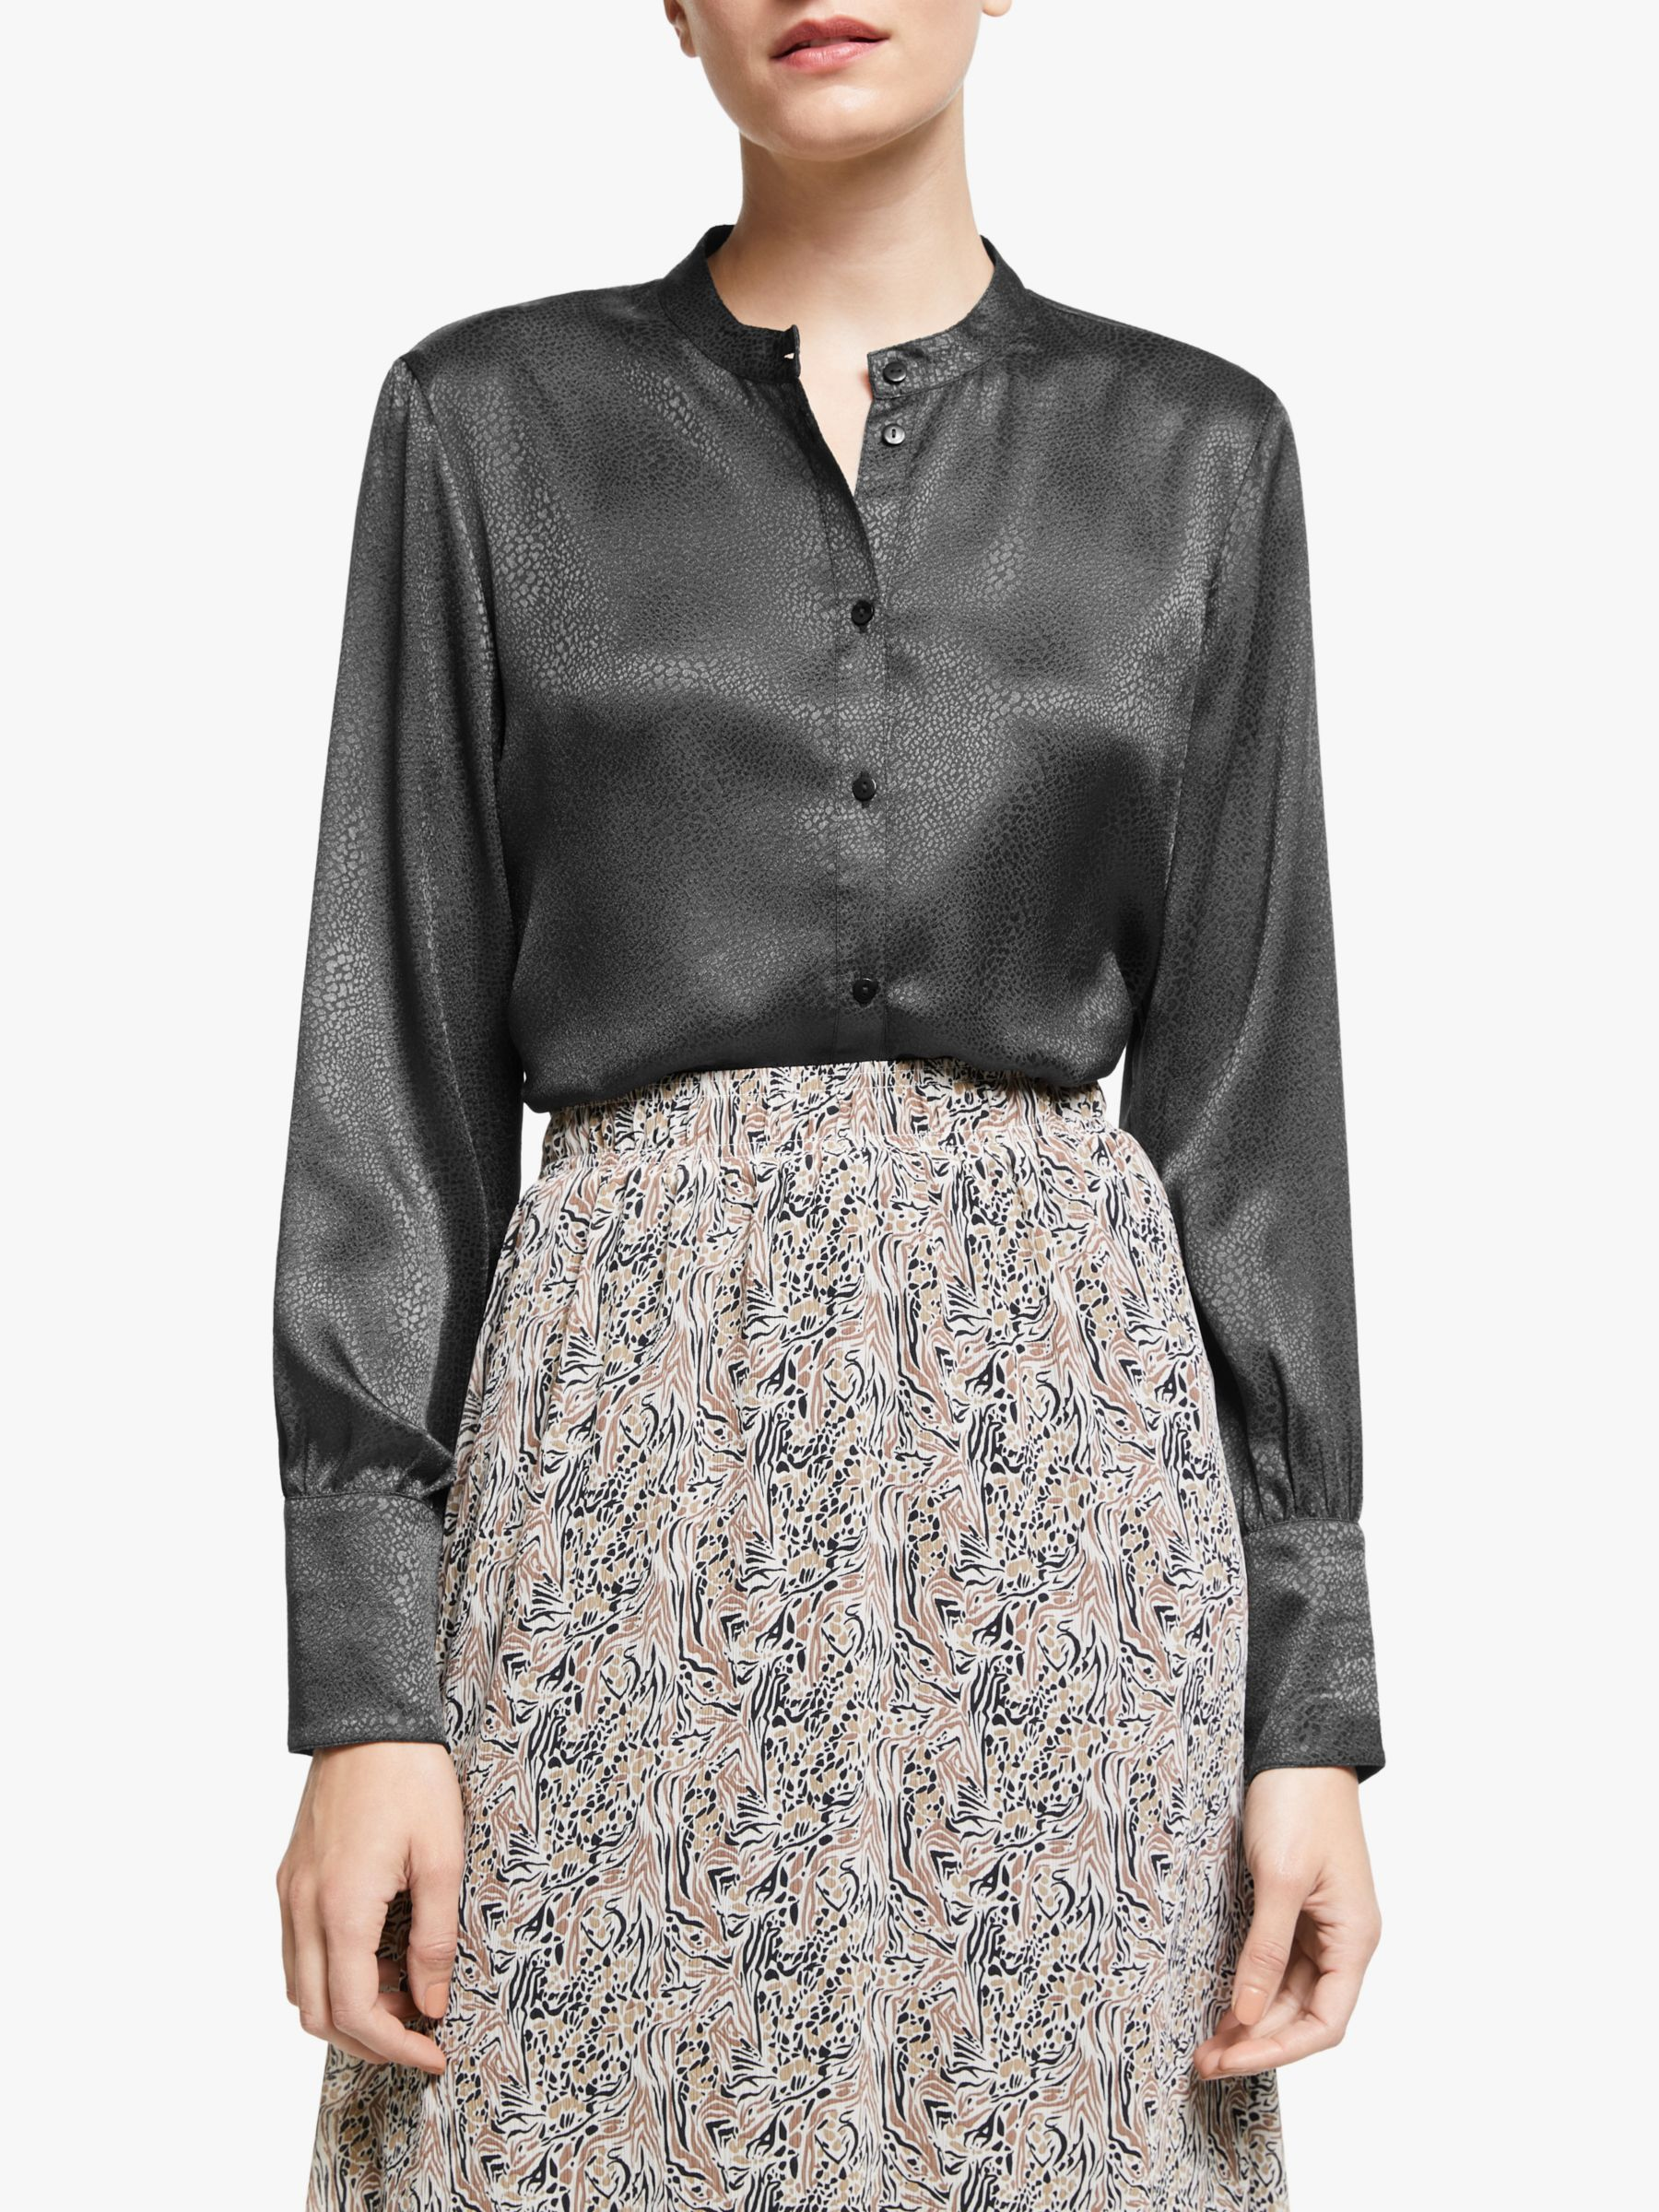 Vero Moda AWARE BY VERO MODA Julia Satin Shirt, Phantom